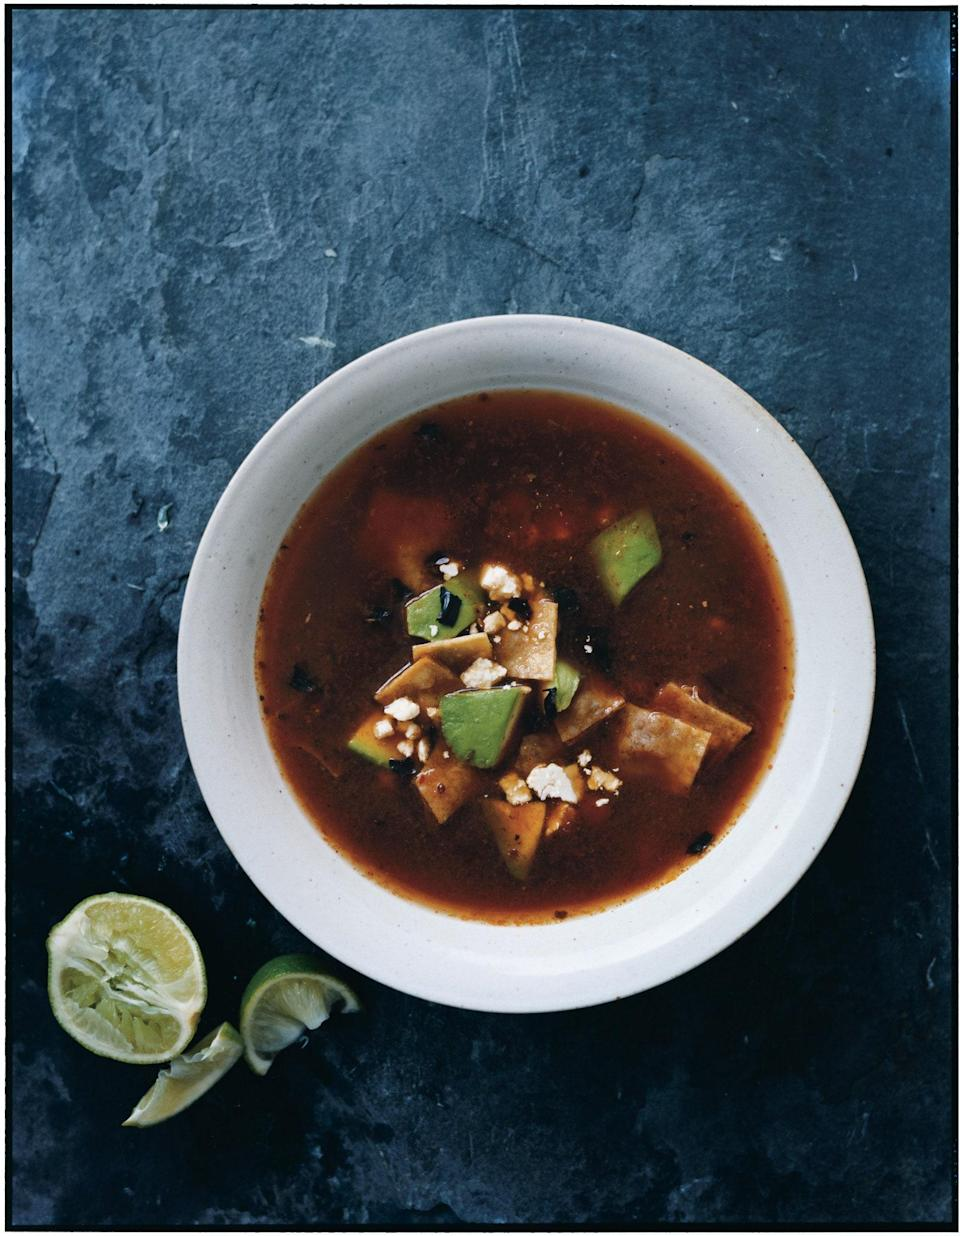 """Tortilla soup is all about contrasting textures, but its real success hinges on a fabulous broth—in this case, homemade chicken stock enriched with a cooked purée of chiles, tomatoes, onion, and garlic. <a href=""""https://www.epicurious.com/recipes/food/views/tortilla-soup-with-chiles-and-tomatoes-351417?mbid=synd_yahoo_rss"""" rel=""""nofollow noopener"""" target=""""_blank"""" data-ylk=""""slk:See recipe."""" class=""""link rapid-noclick-resp"""">See recipe.</a>"""